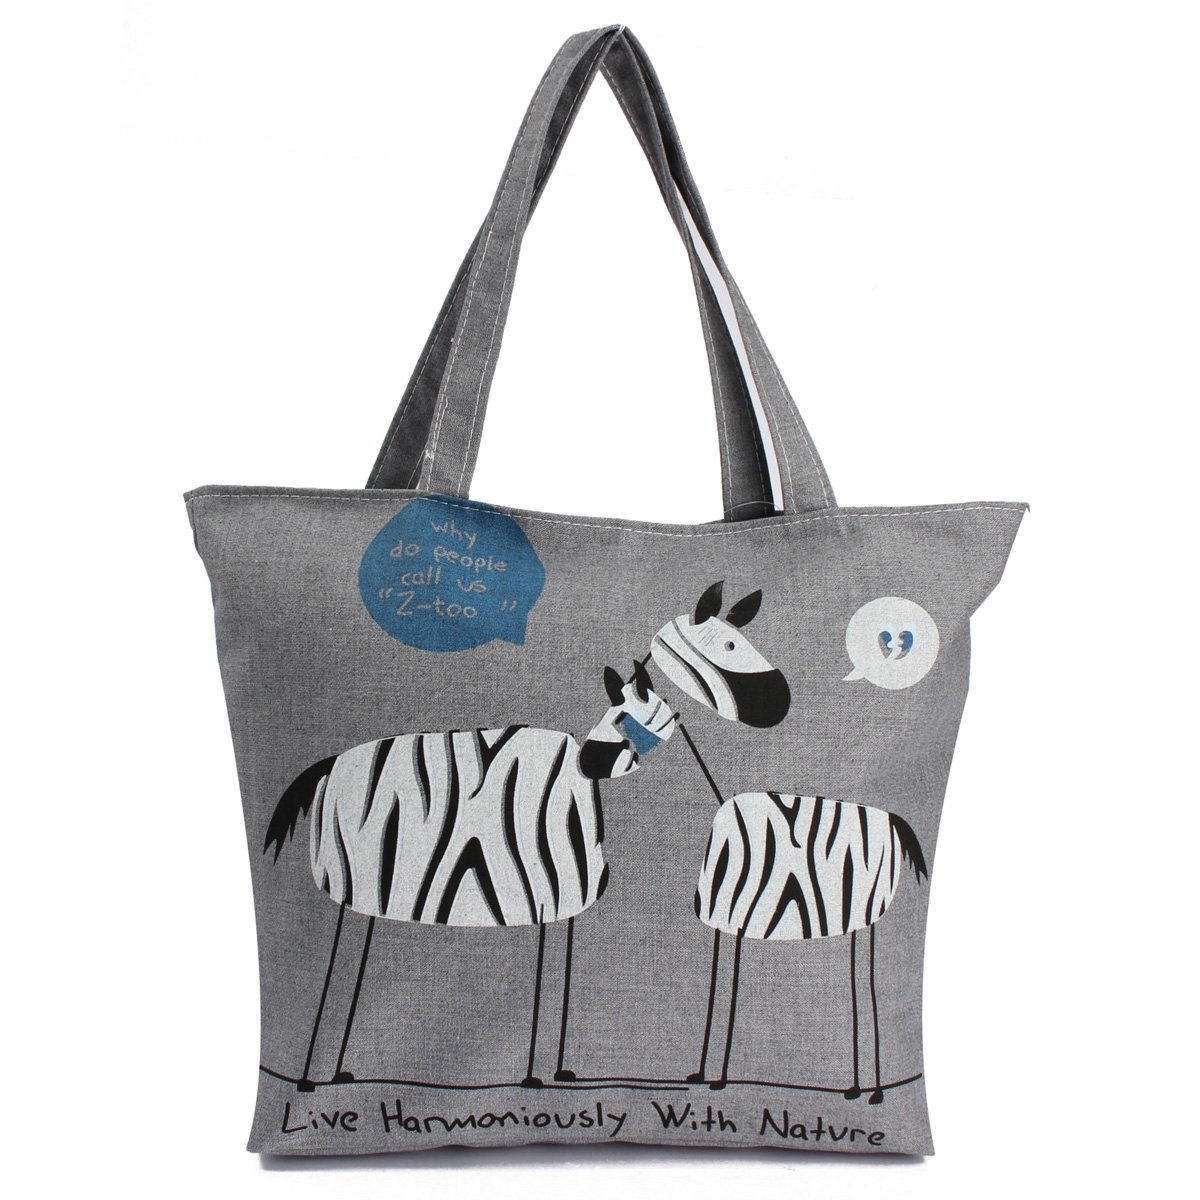 269bf3b3fe28 Canvas Shopping Tote Pattern | Stanford Center for Opportunity ...